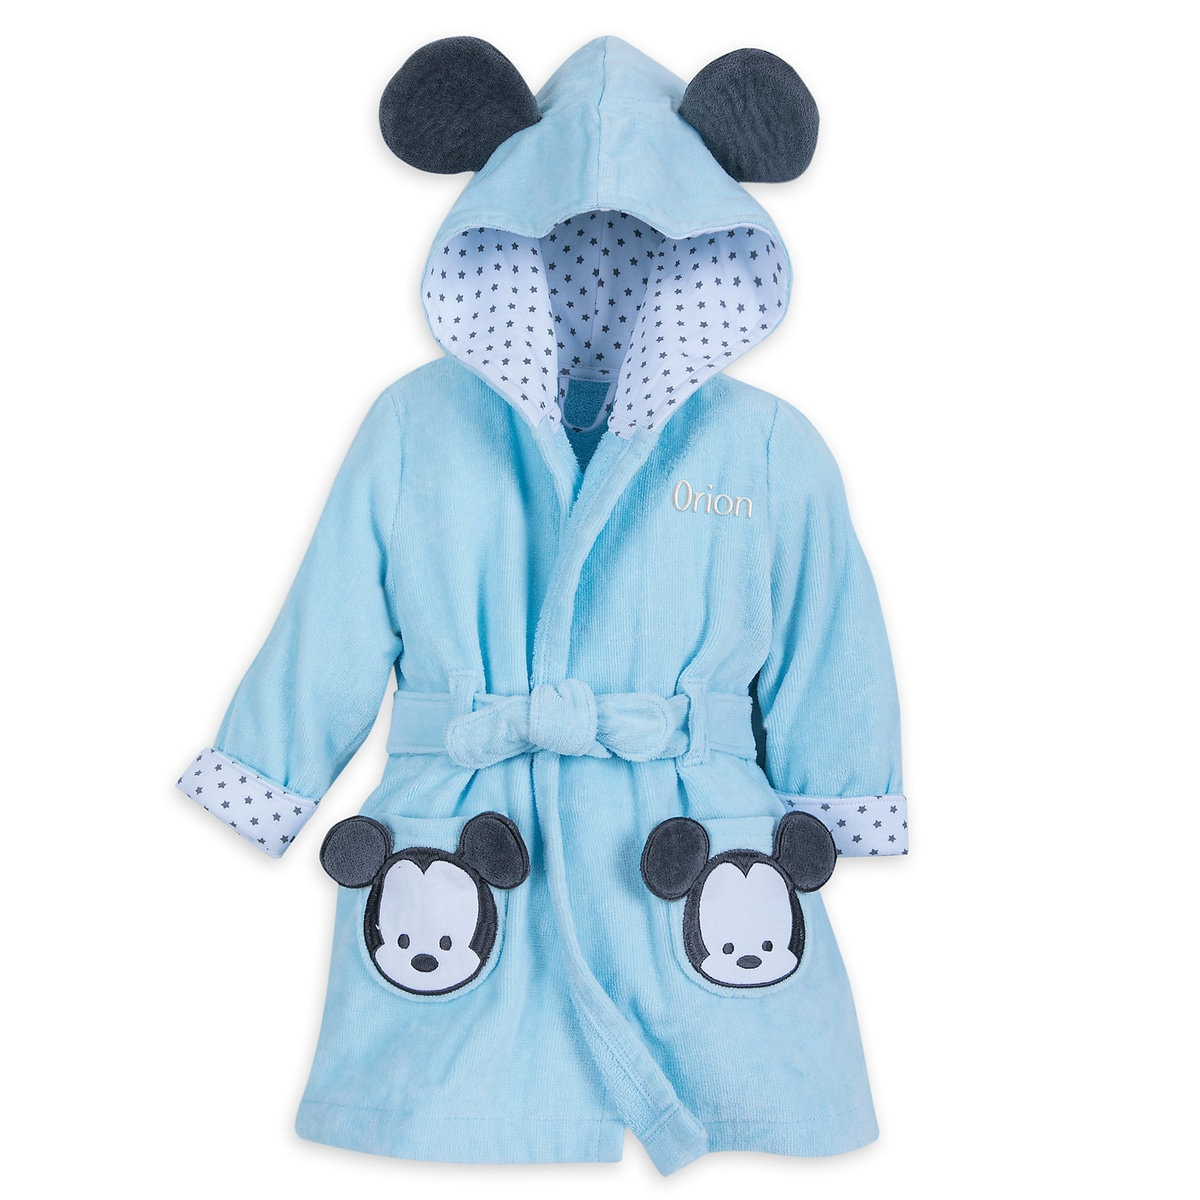 Mickey Mouse Hooded Bath Robe for Baby - Personalizable | shopDisney